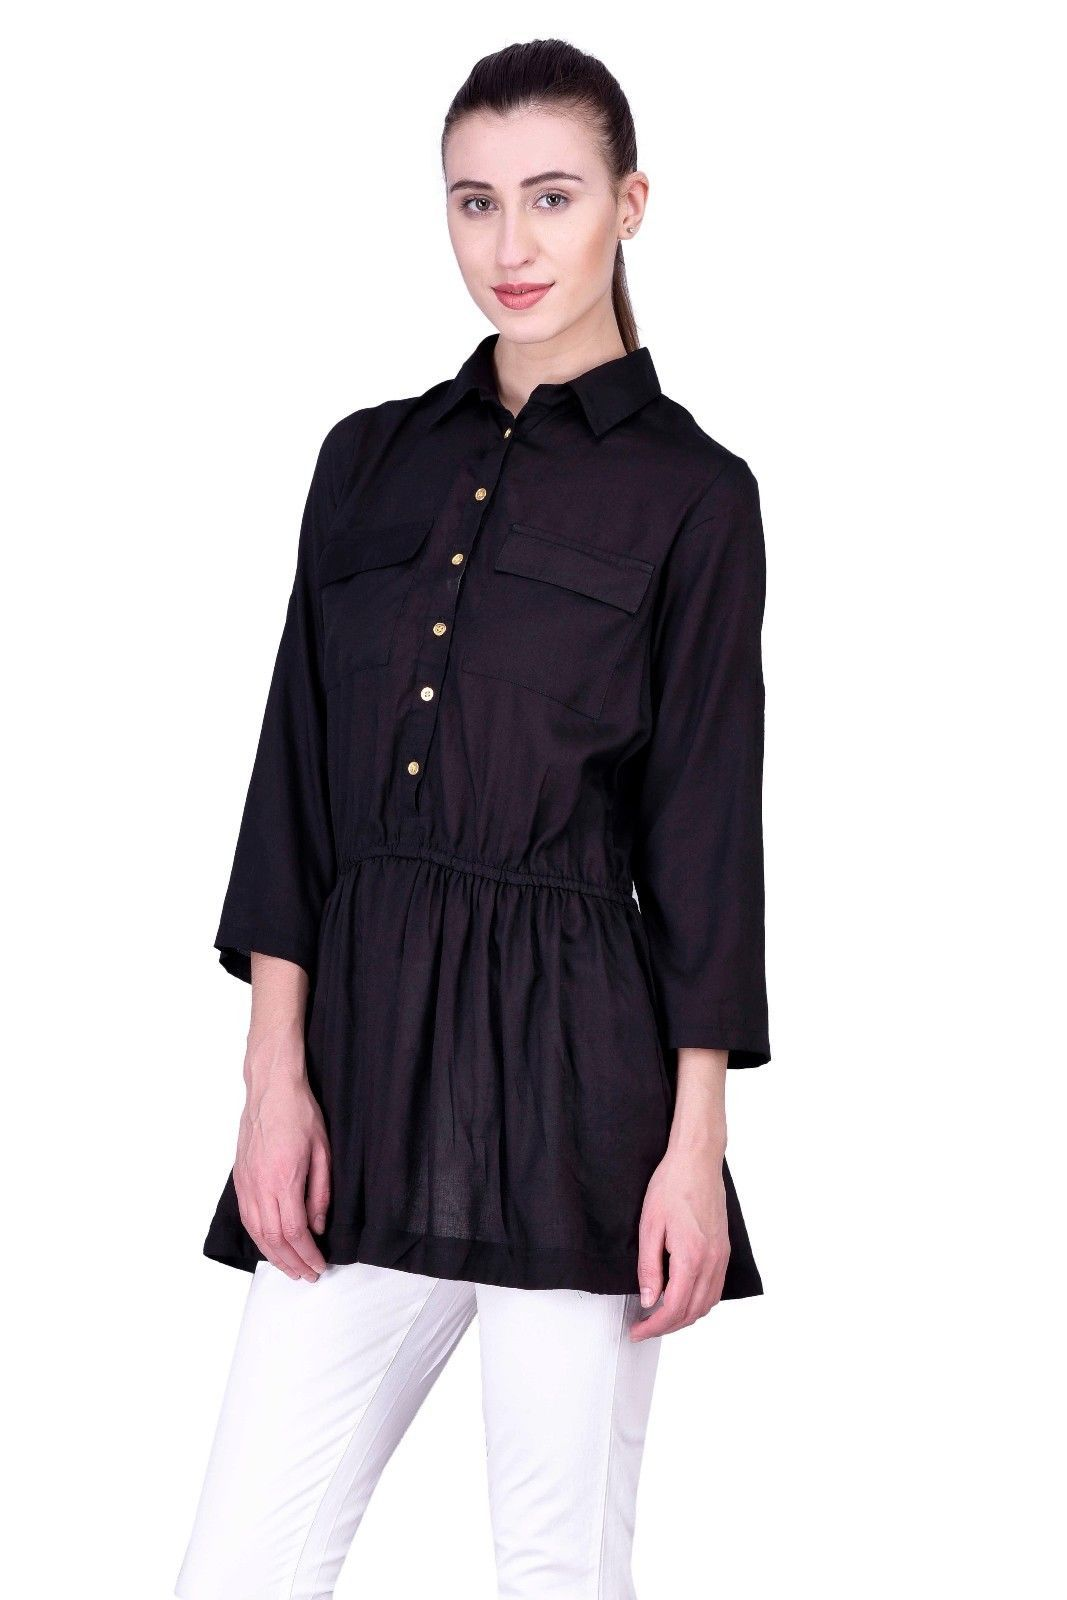 Black Laabha Women Fashion Top Blouse T-shirt Rayon Solid Shirt